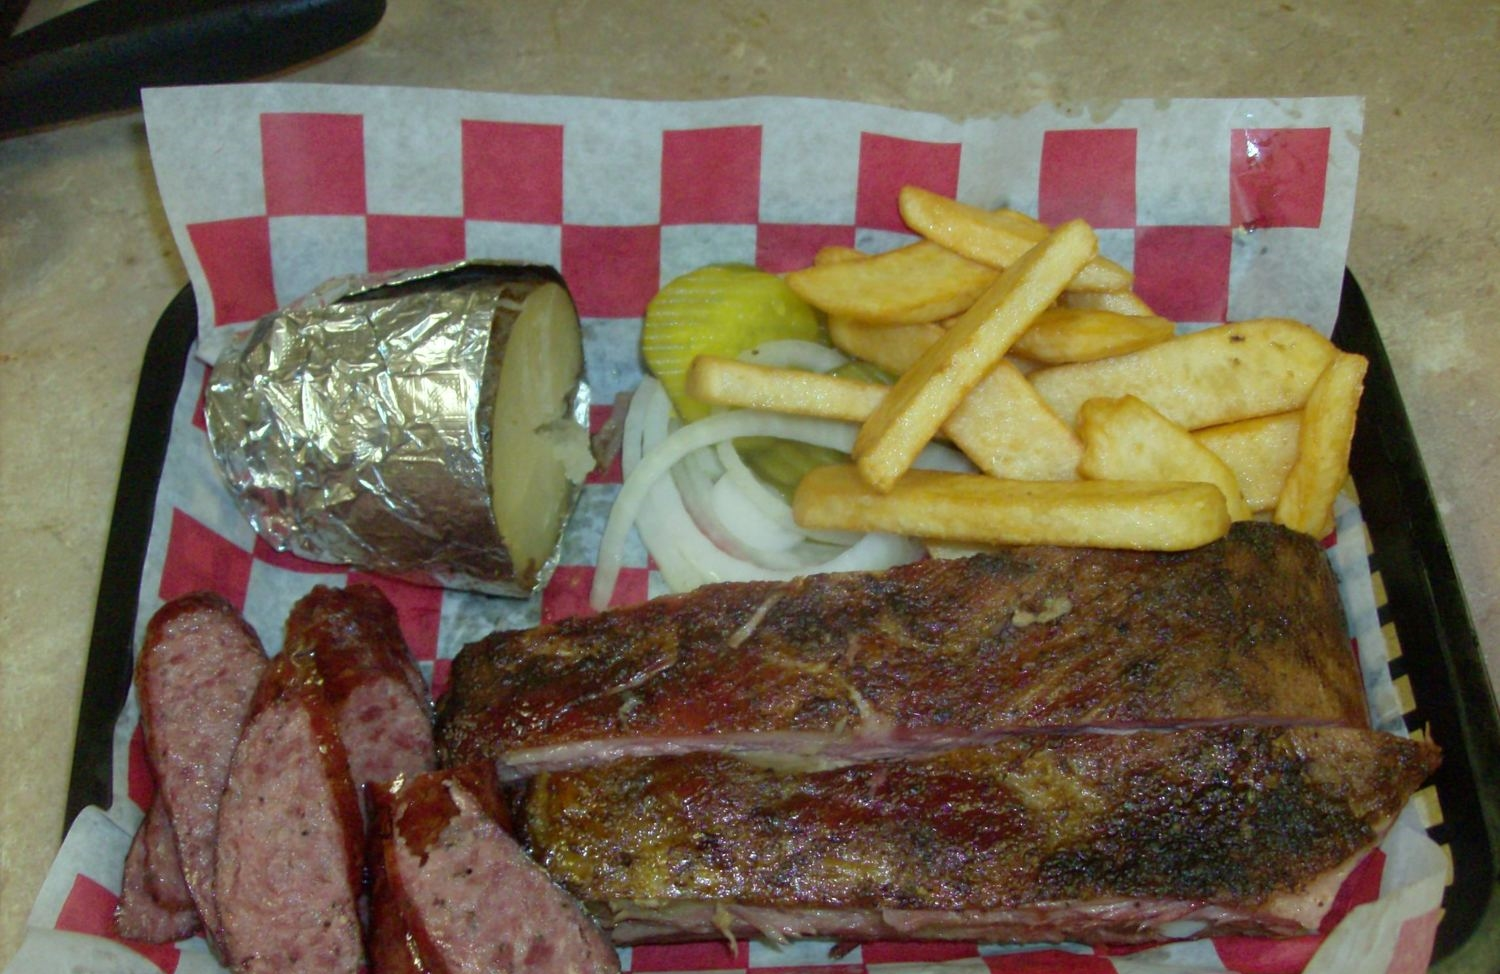 Bar-B-Que Plate (two meat: Ribs, sausage) with fries and baked potato